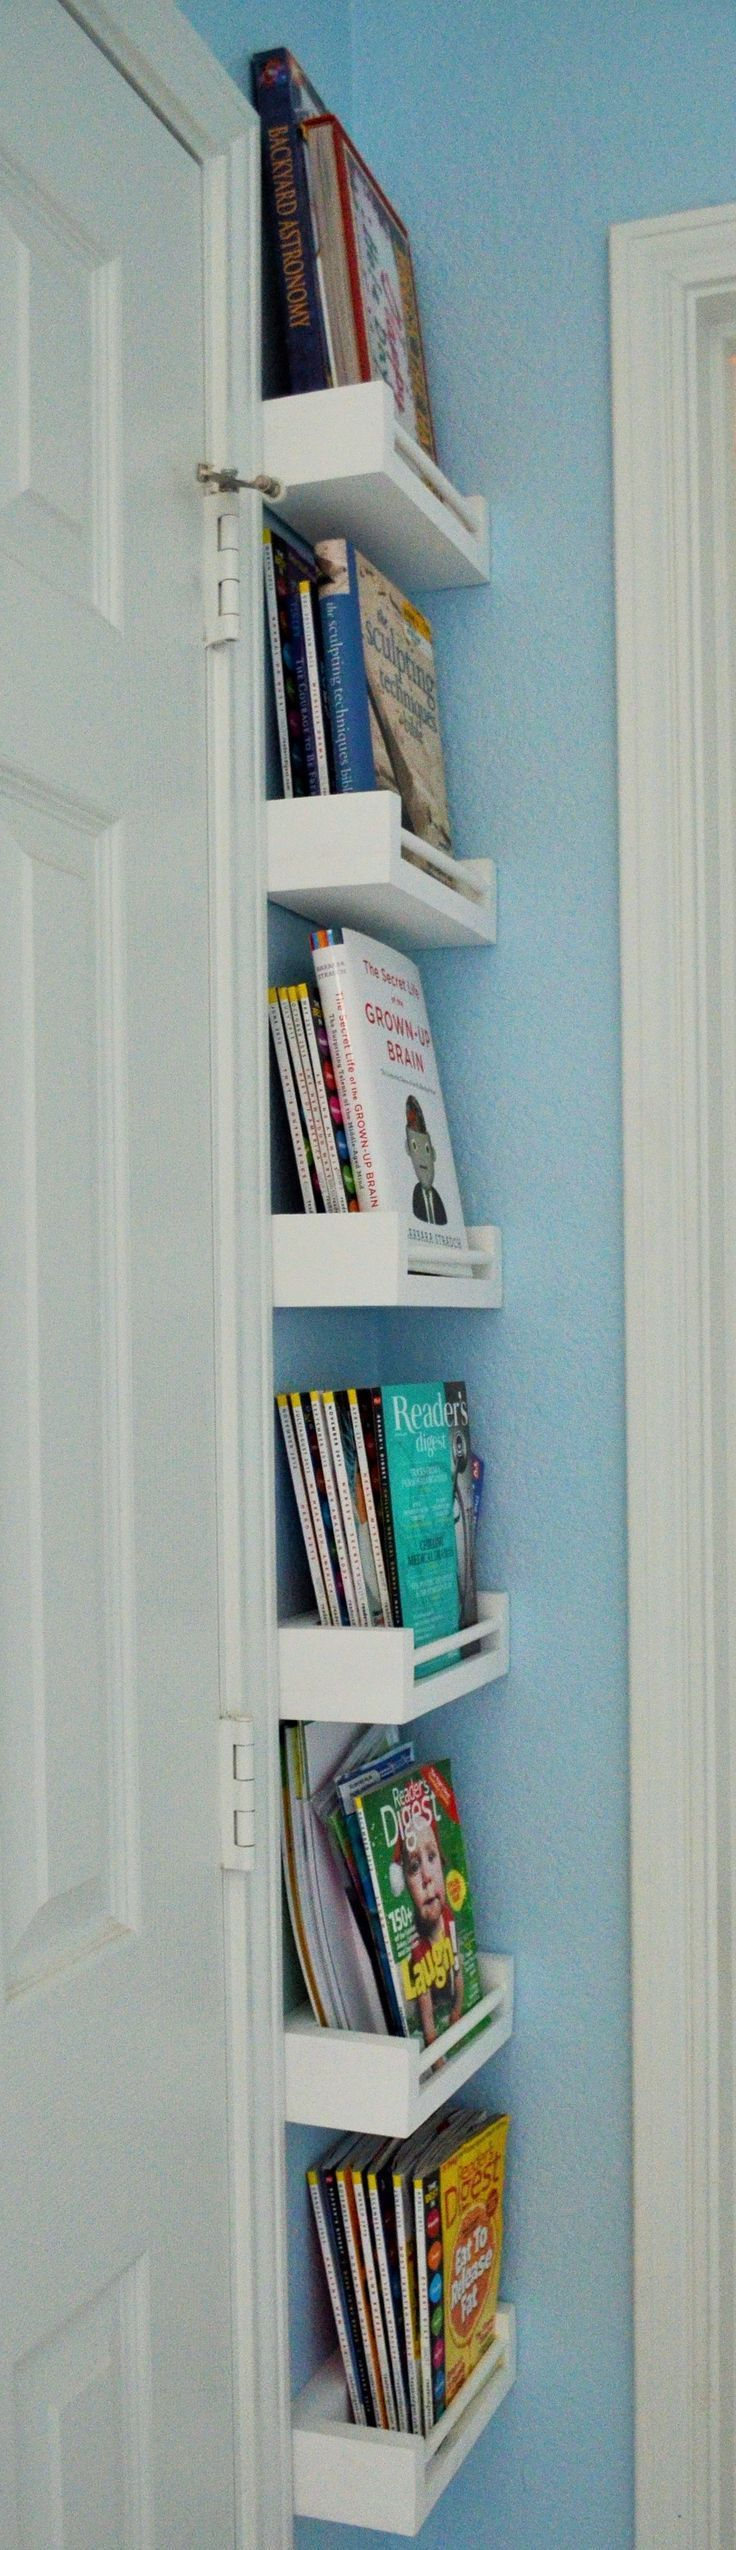 small corner bookshelves work great for behind door in playroom bedroom storage for small roomssmall childrens bedroom ideasorganization